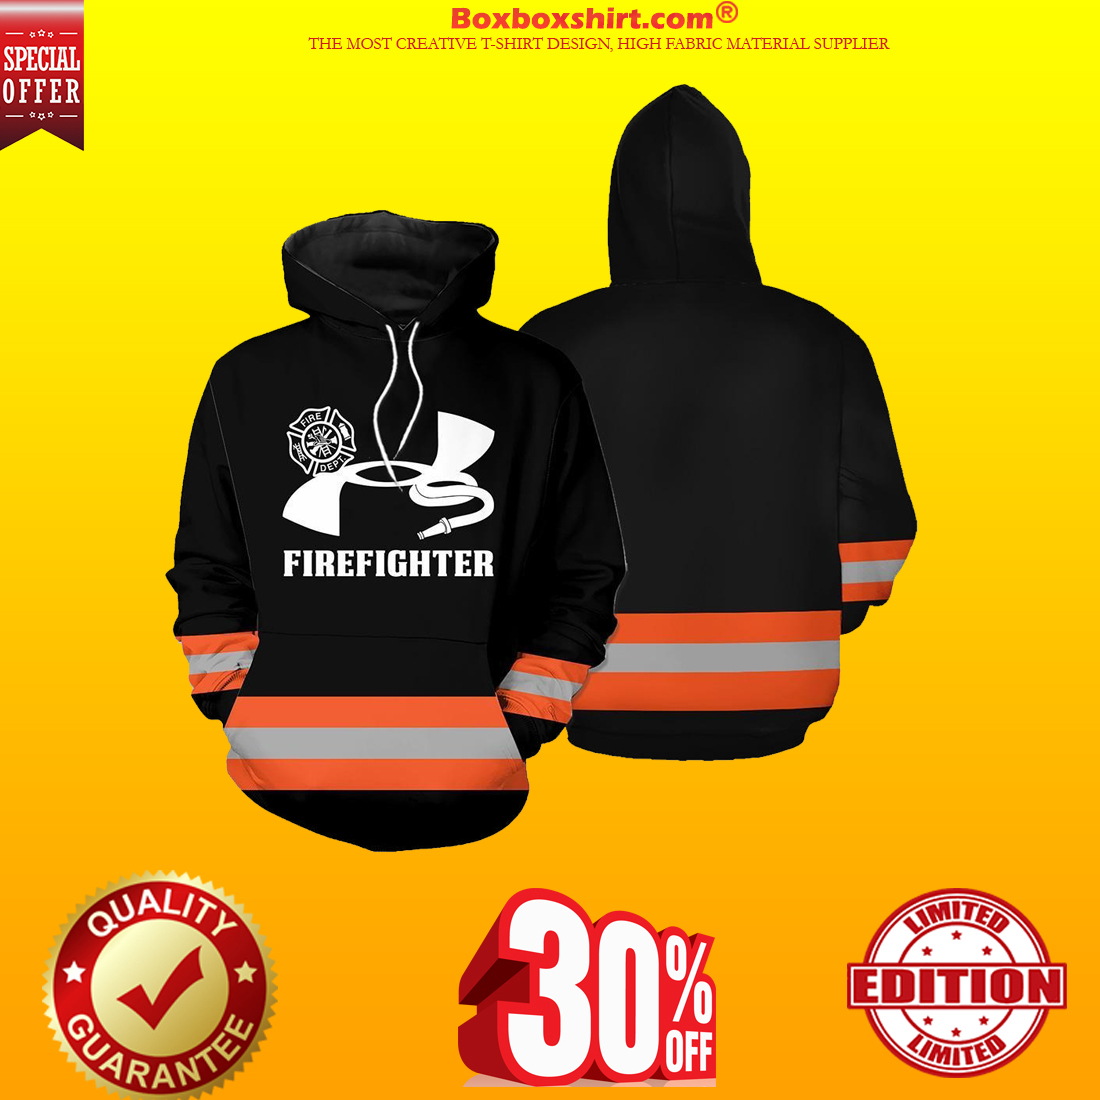 Under Armour firefighter hoodie and shirt orange line 3d